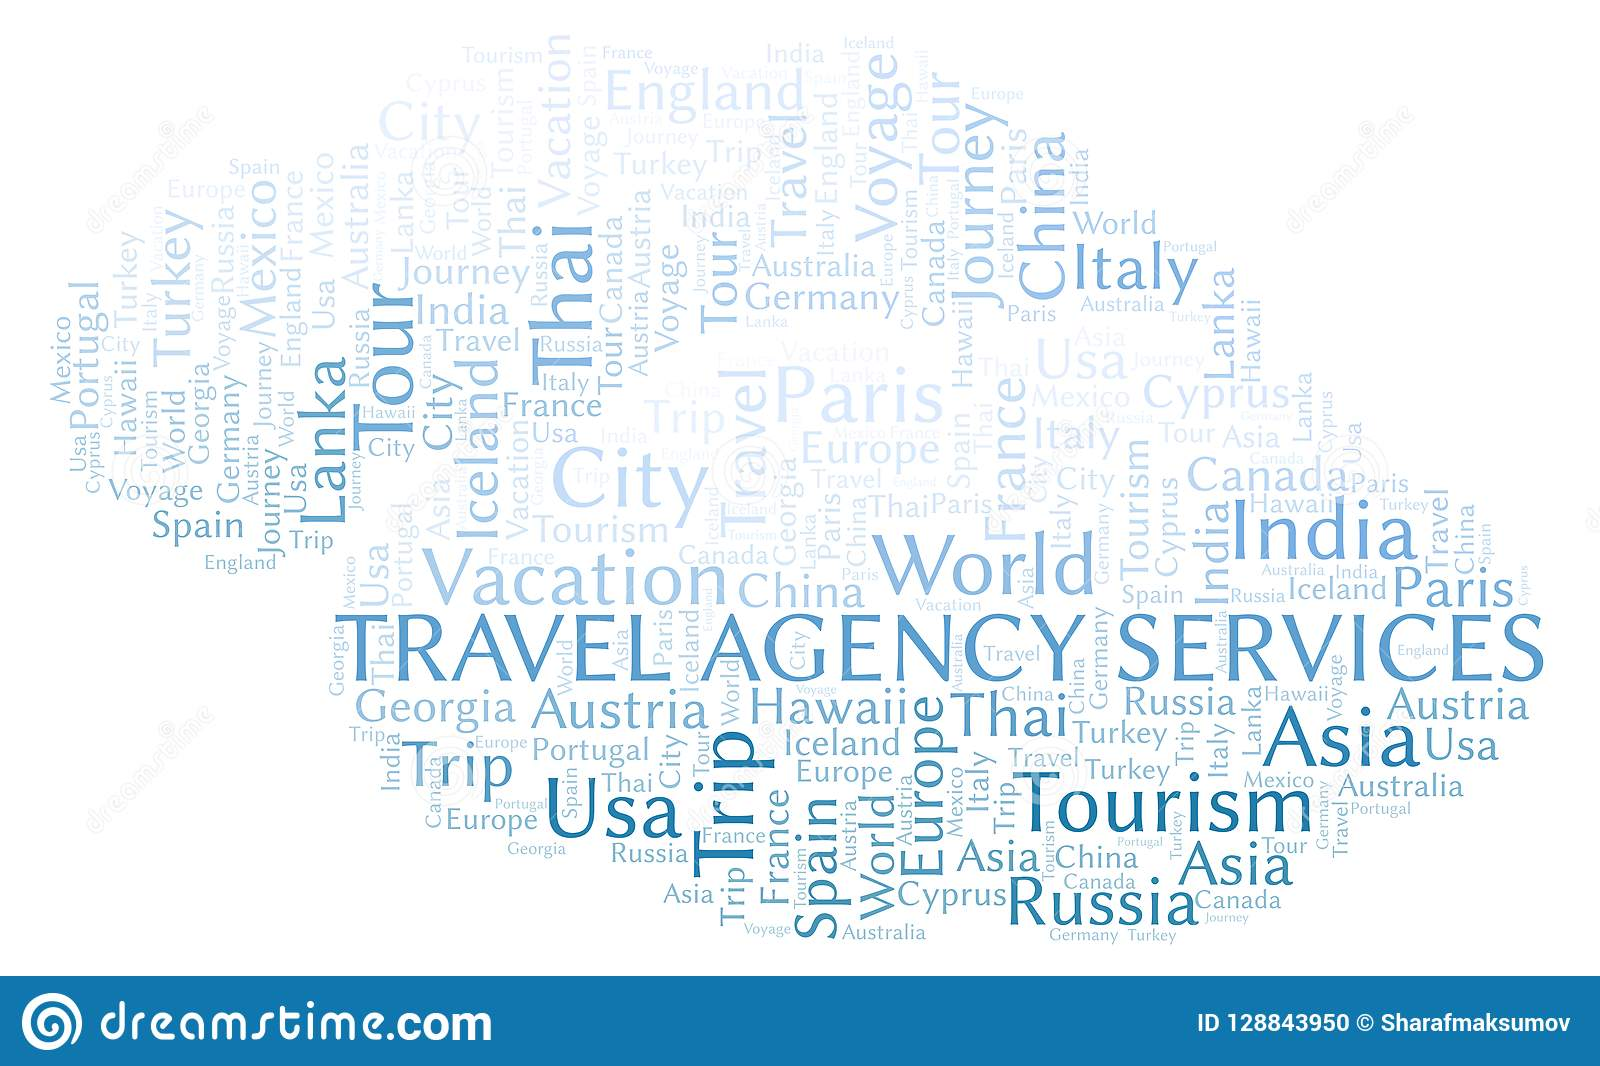 Travel Agency Services Word Cloud  Stock Illustration